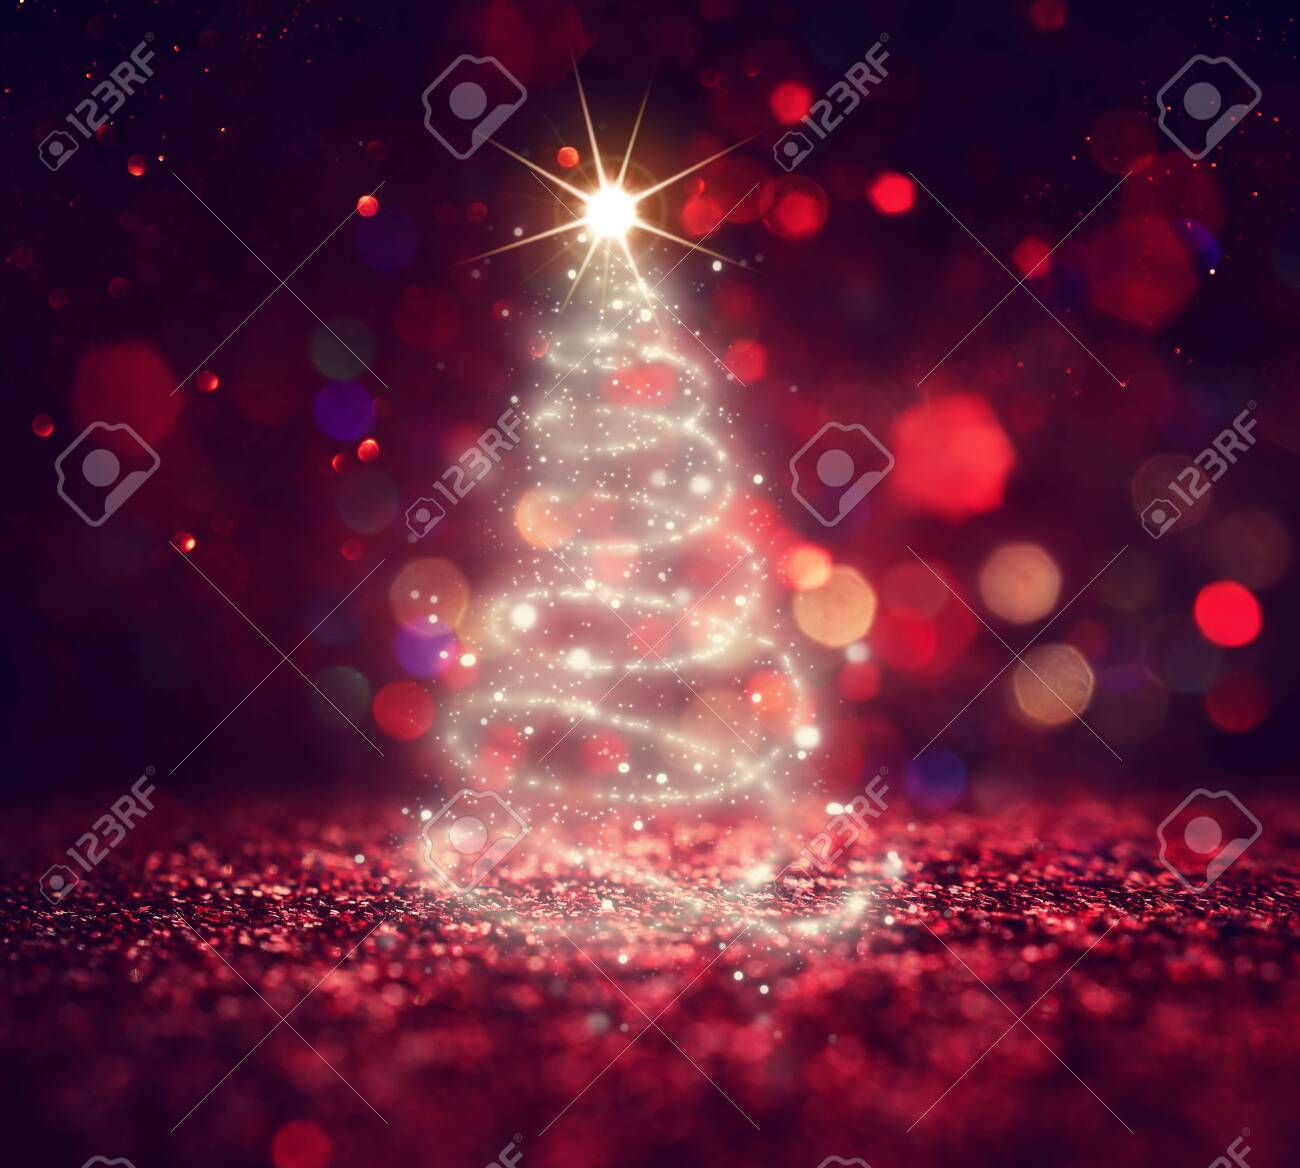 background of Christmas tree with defocused glitter lights - 133891099